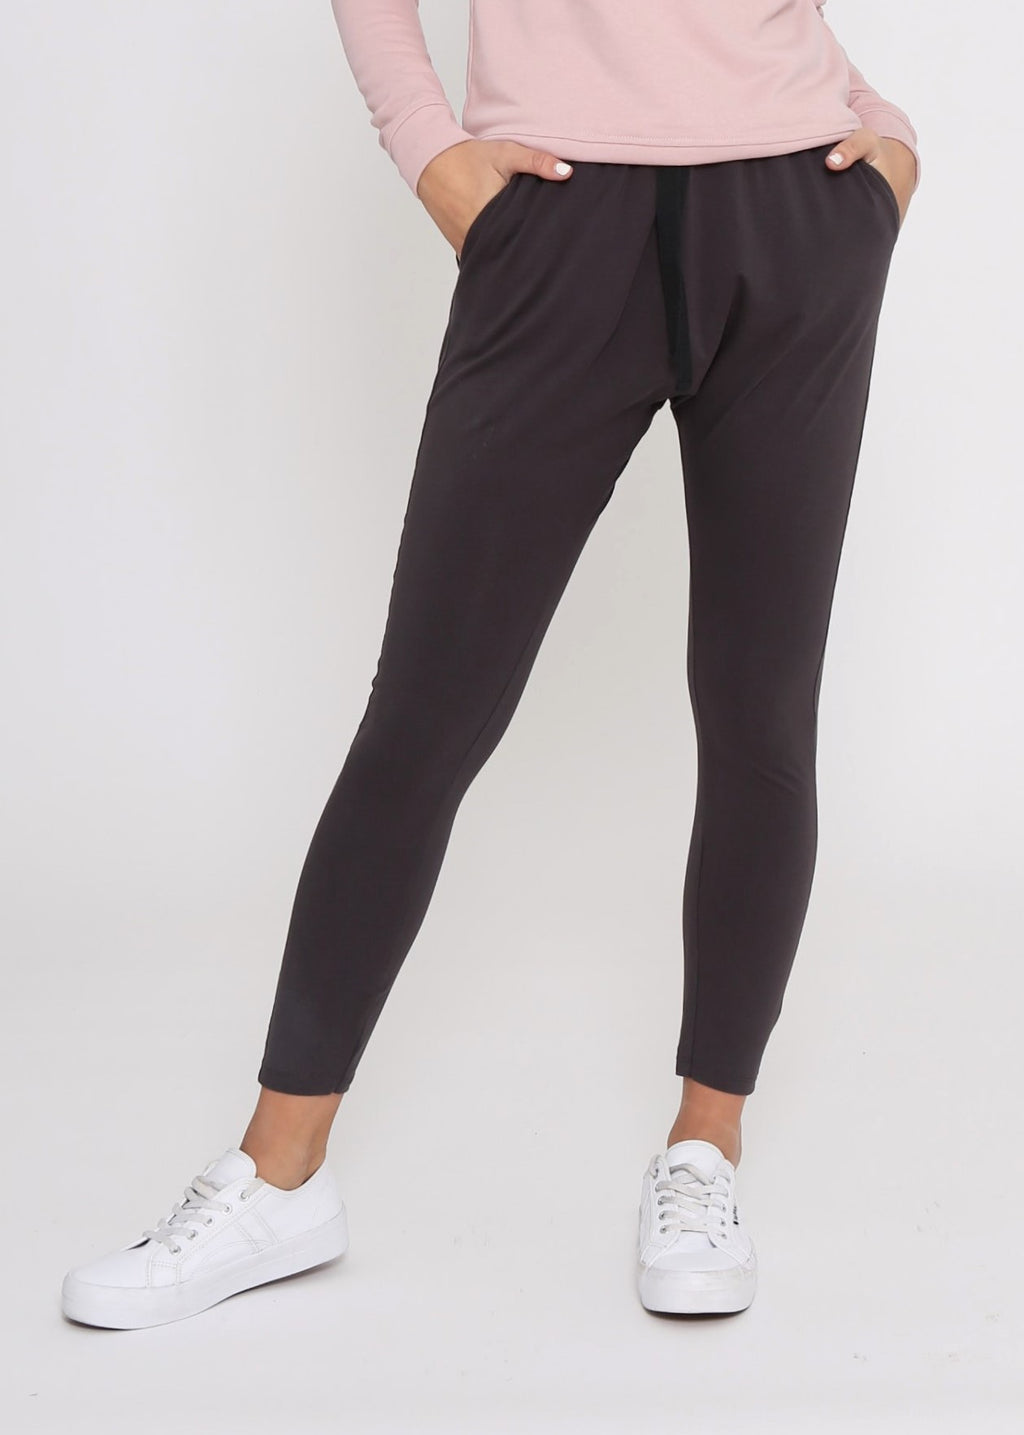 KIERA DROP CROTCH JOGGER - DARK GREY